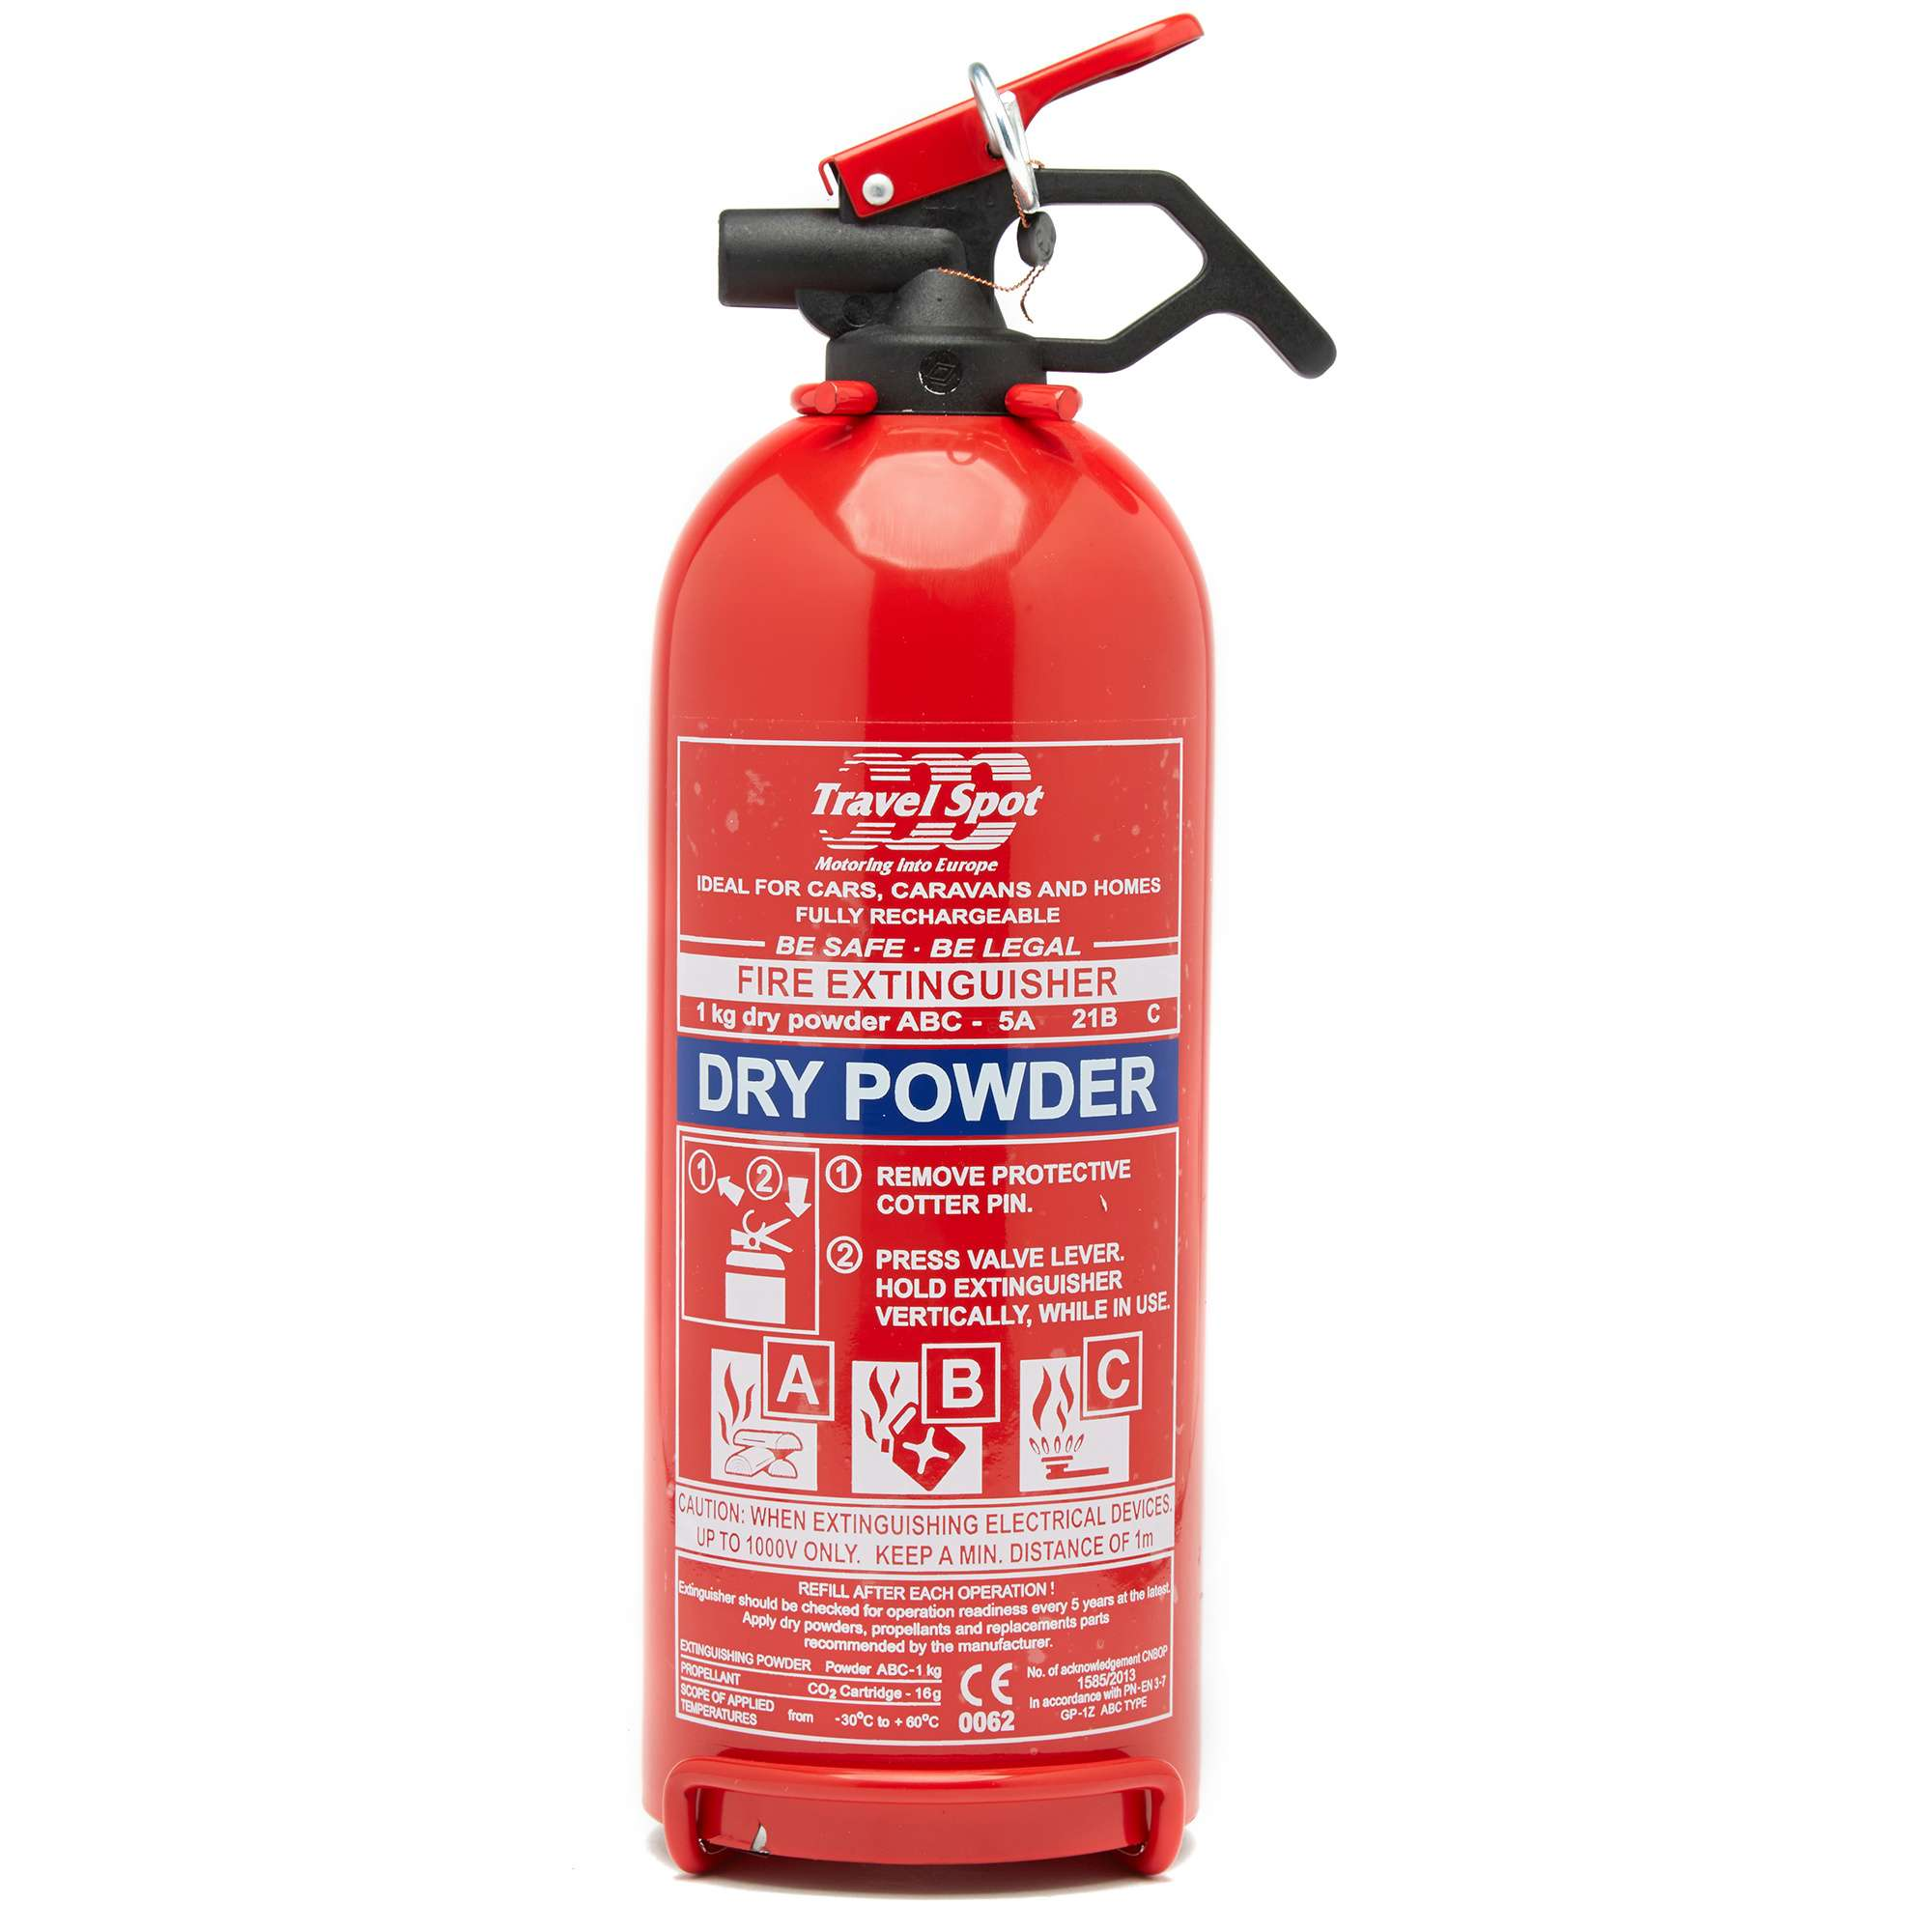 BOYZ TOYS Fire Extinguisher